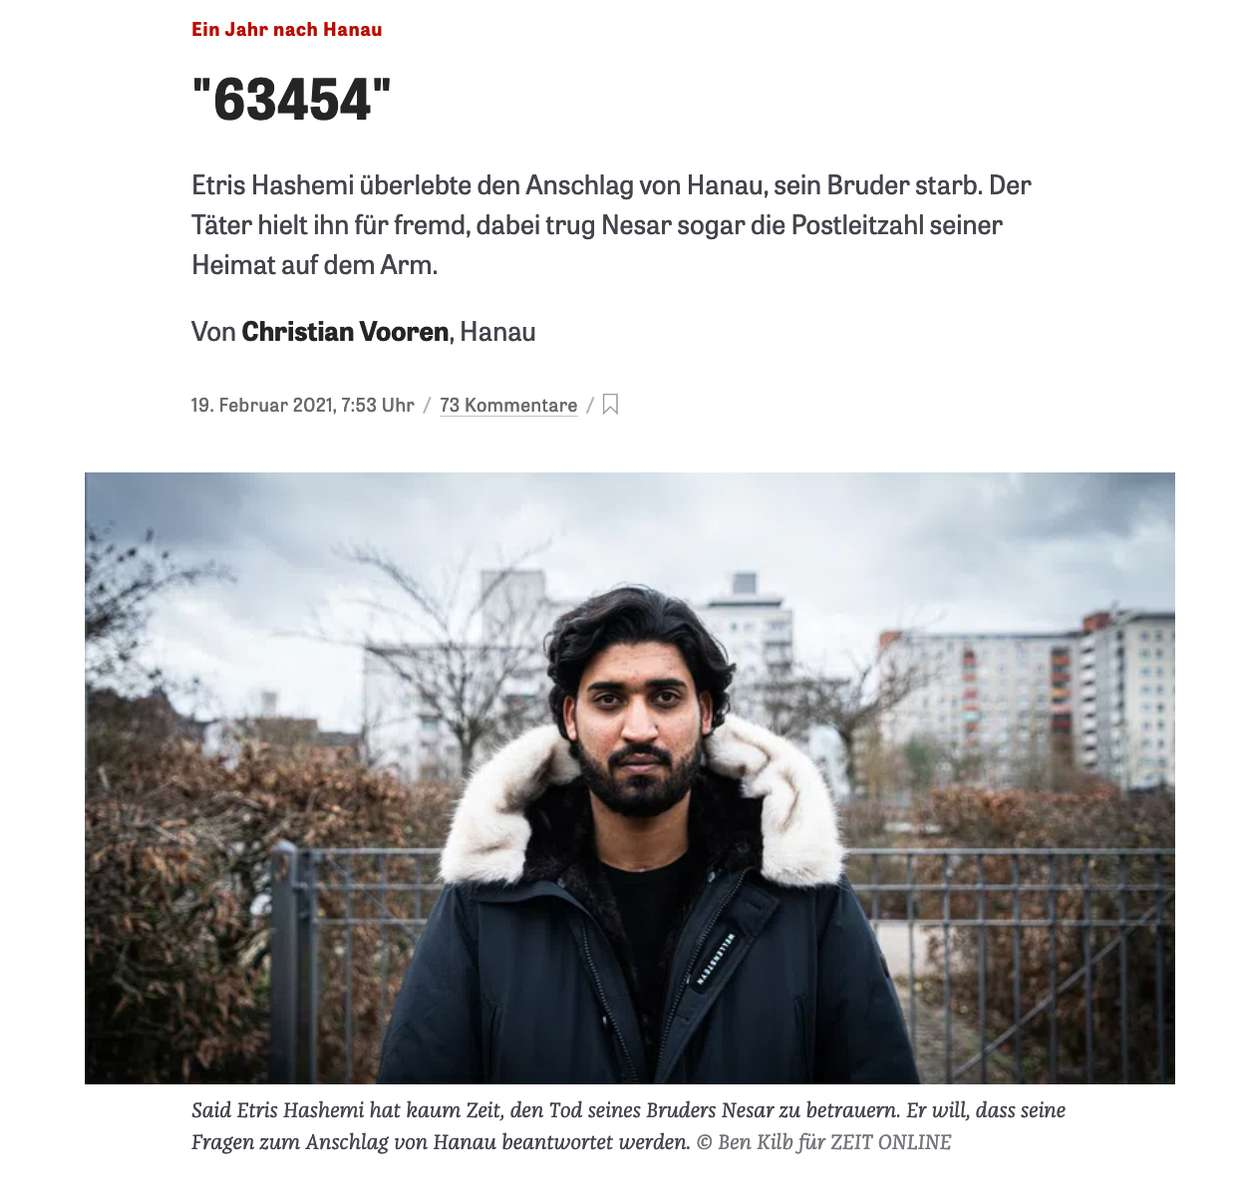 Said Etris Hashemi lost his brother Nesar and was serioulsy wounded himself when a far-right extremist attacked guests of a shisha bar in downtown Hanau on February 19th 2020. He spoke to ZEIT ONLINE about the night of the attach.